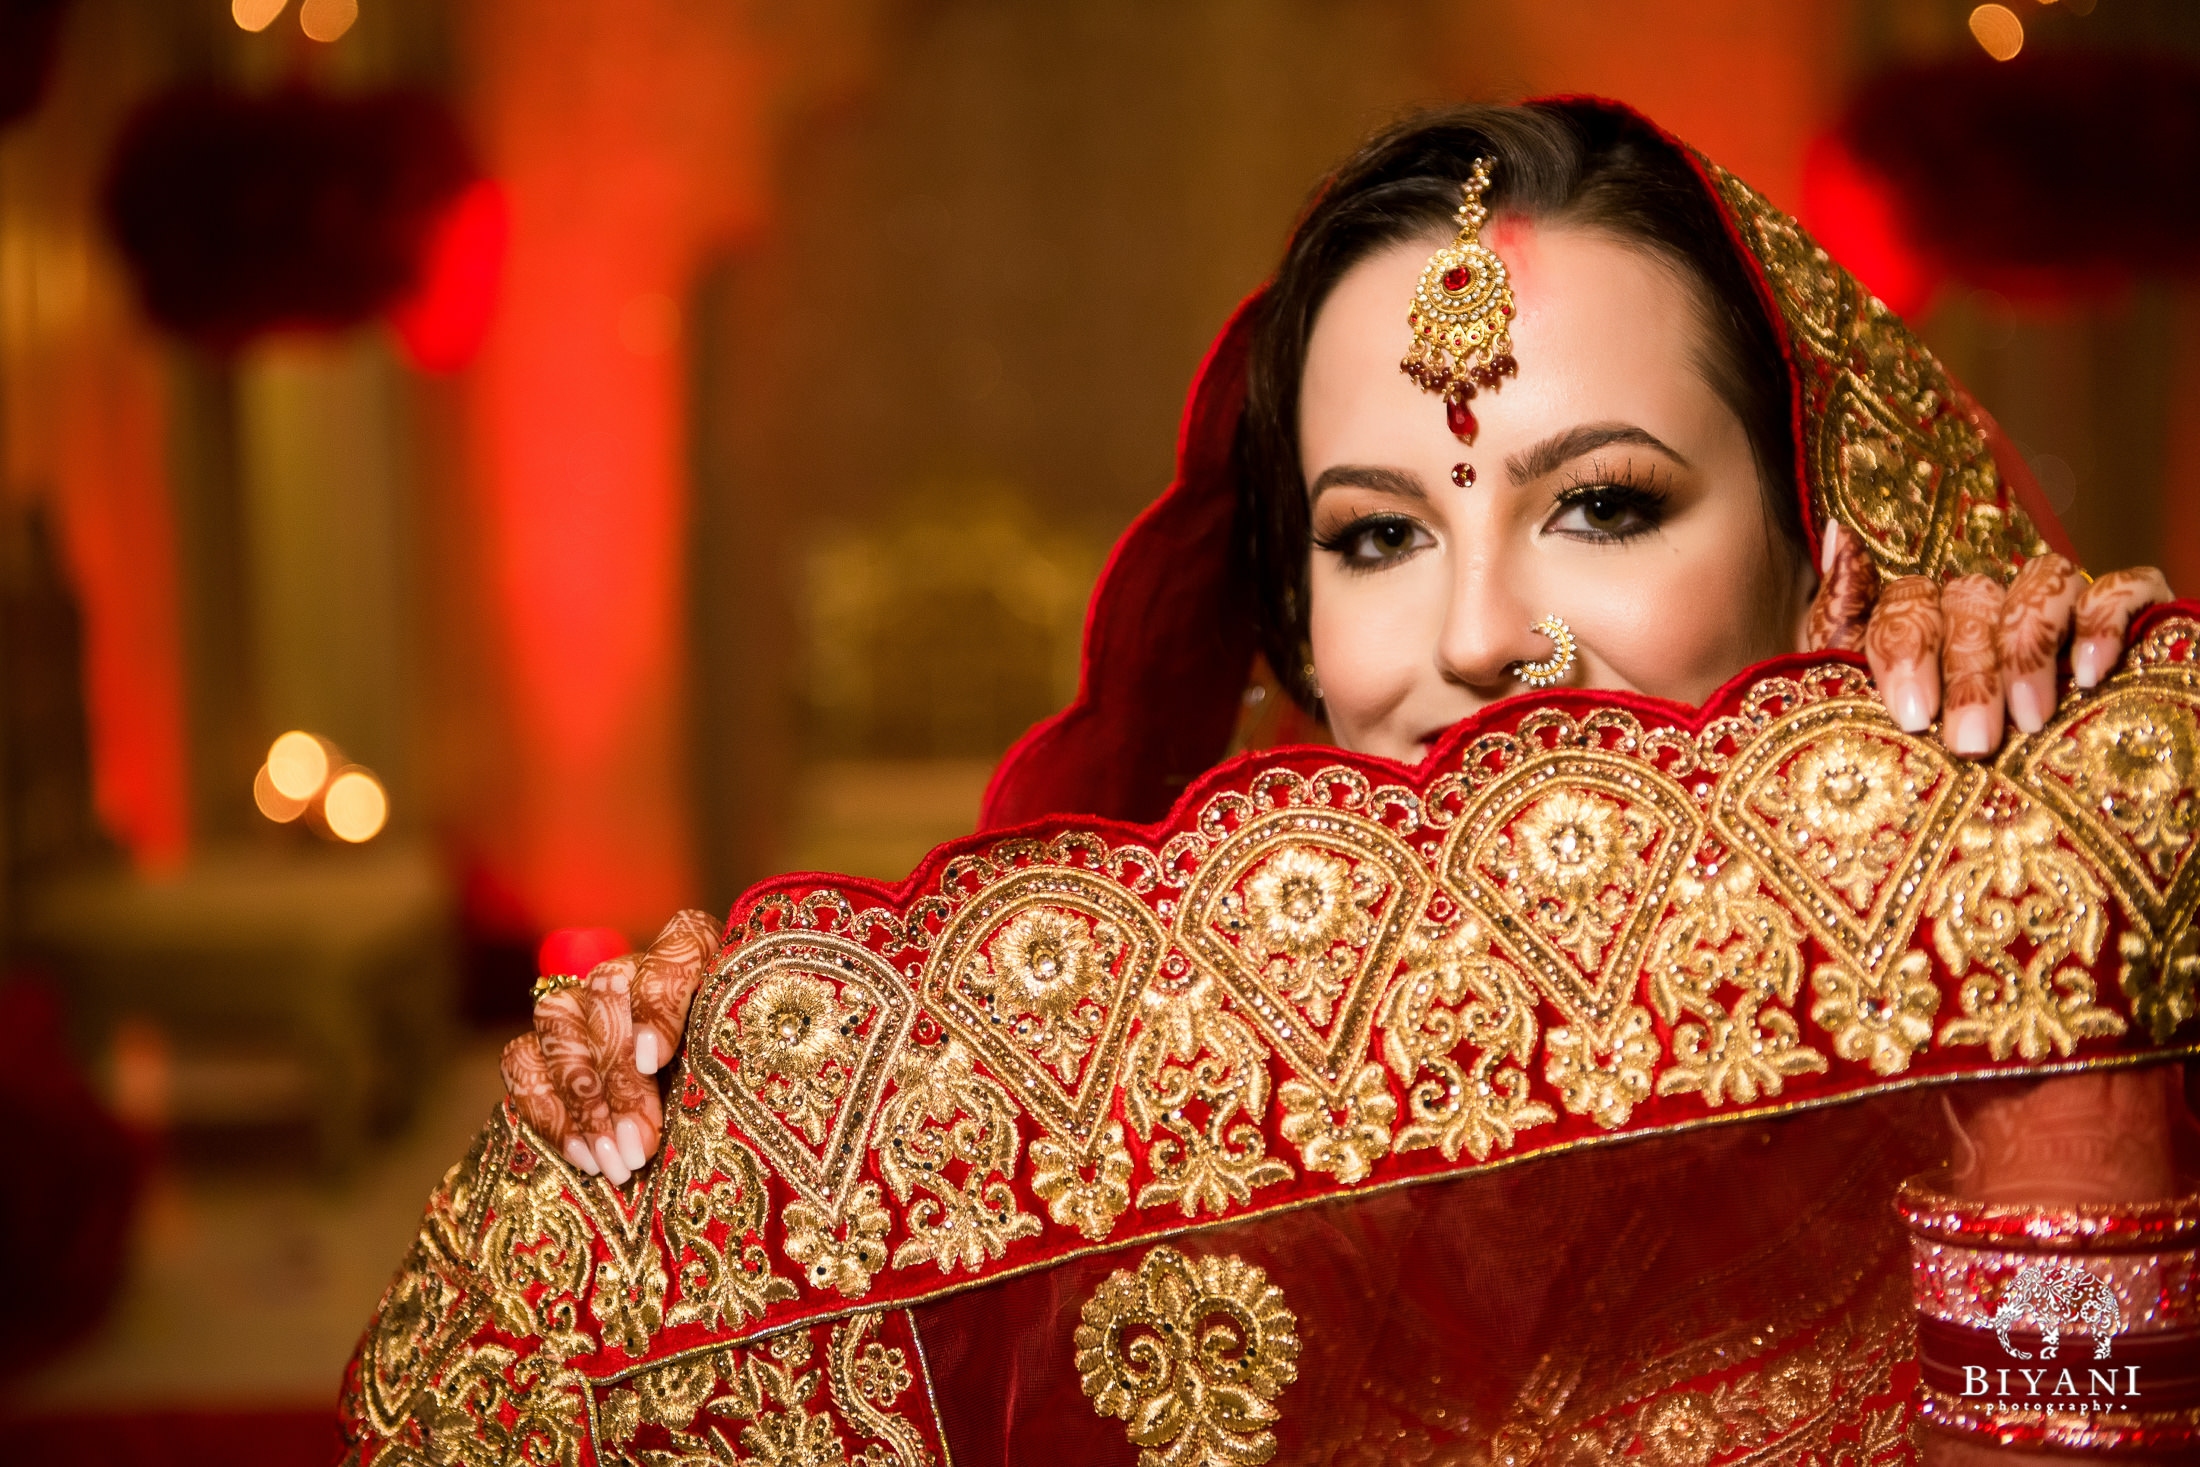 Bride poses with ceremony outfit